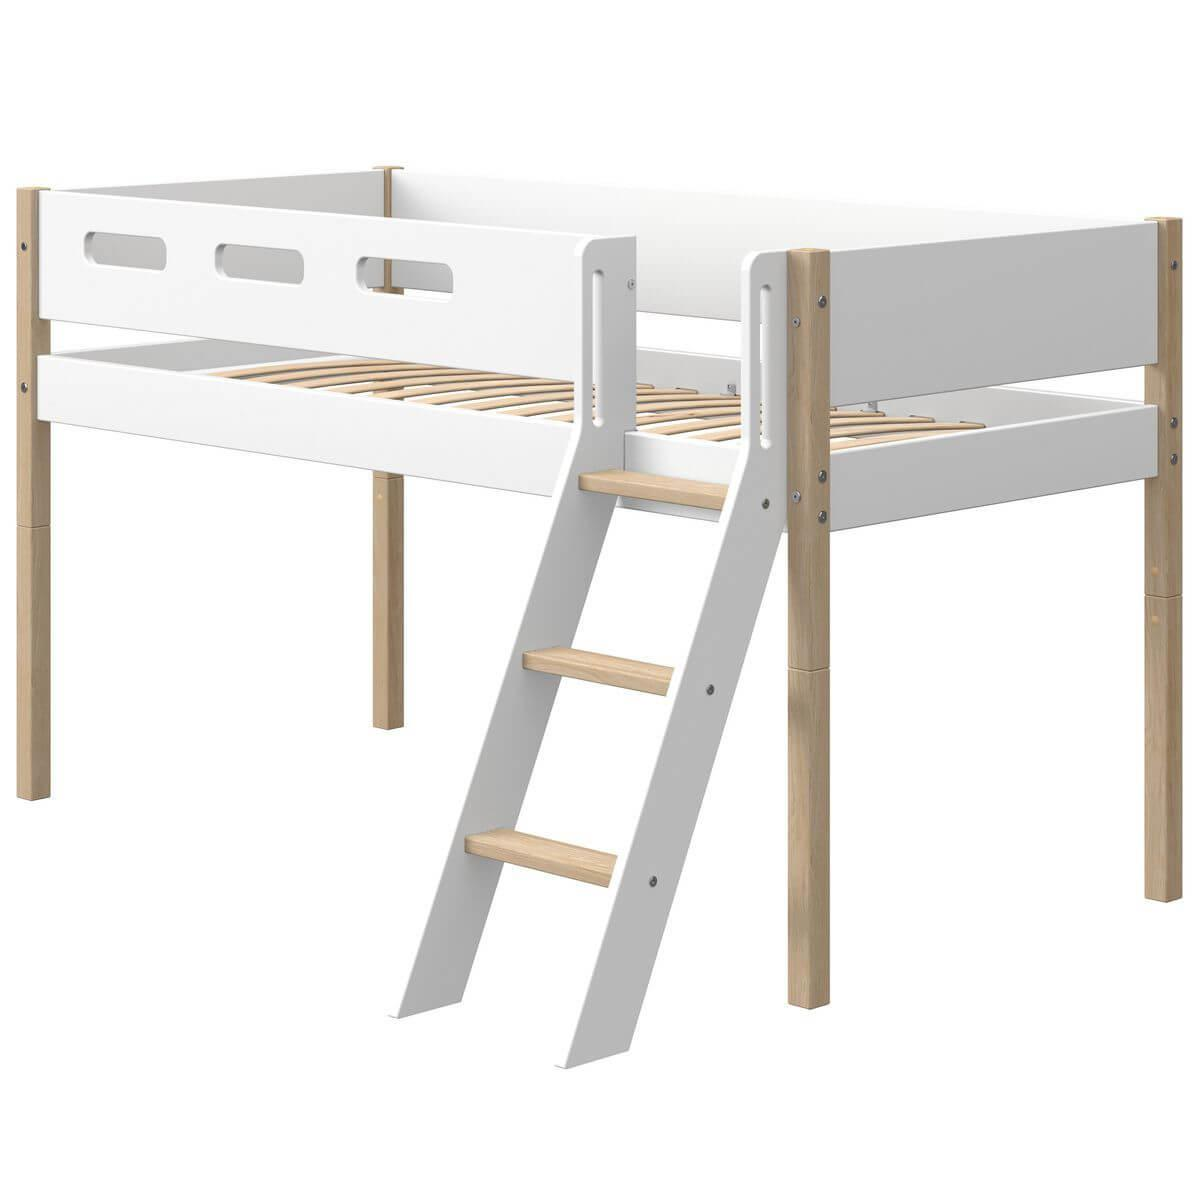 Cama media alta 90x200cm escalera inclinada NOR Flexa roble-blanco